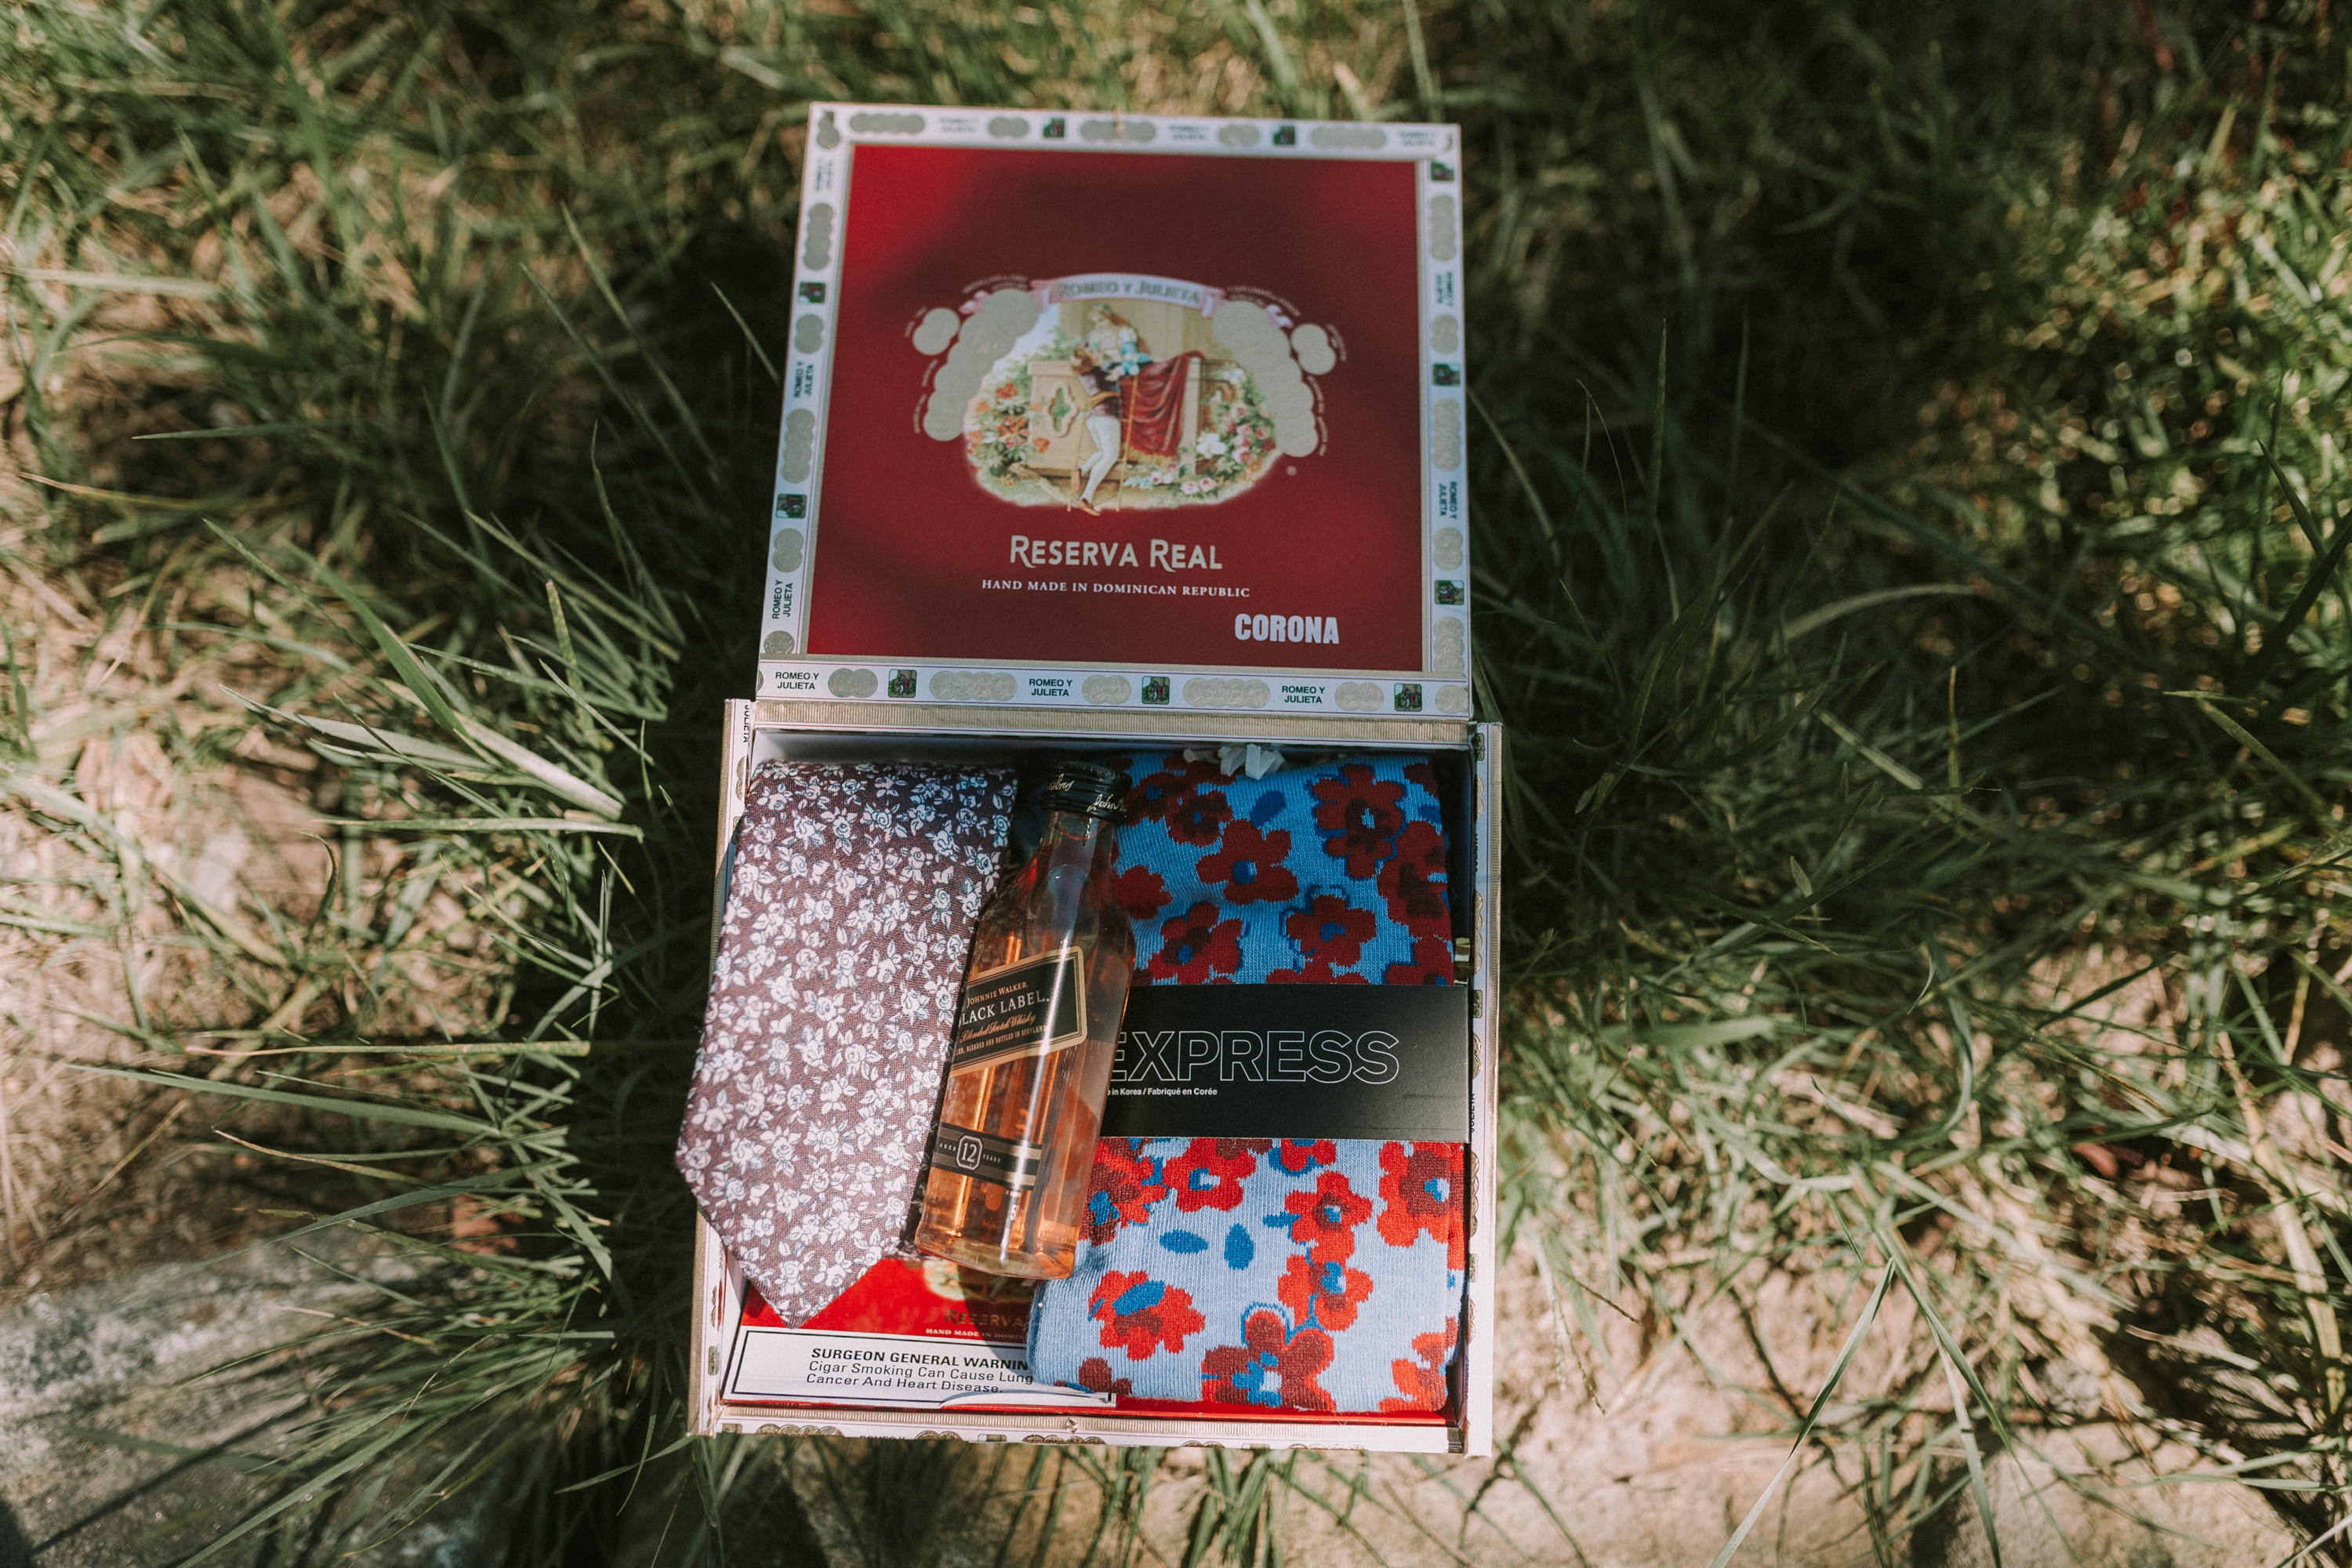 groomsmen gift, tie, groomsmen box on grass, whisky, nip, express tie, groomsmen gift cigar box, cigar box gift